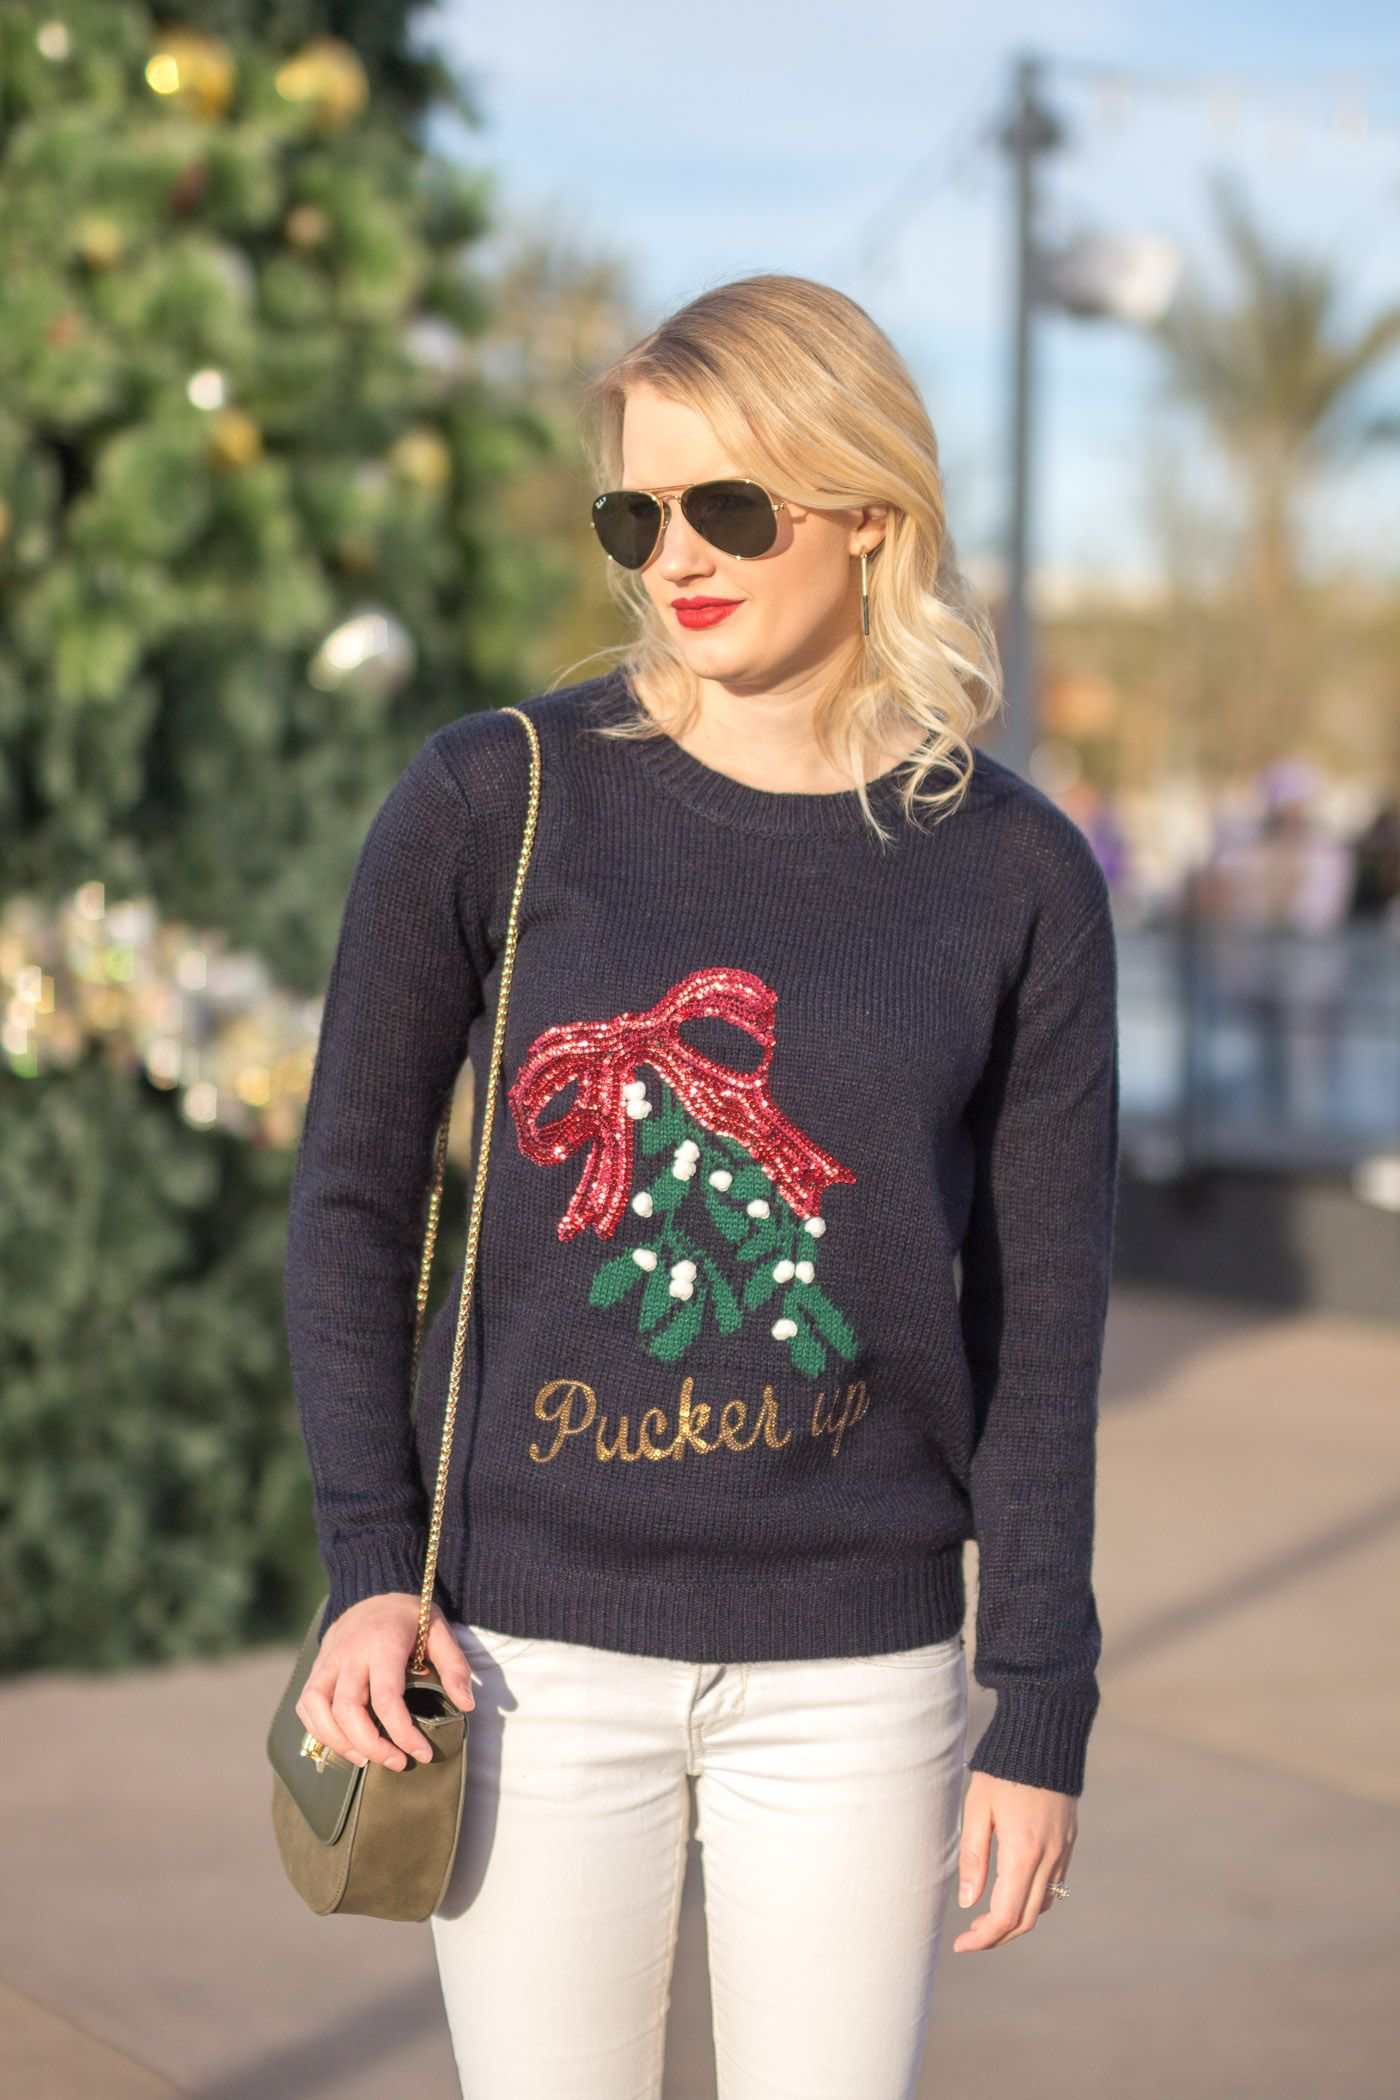 How To Style An Ugly Christmas Sweater | Outfit Ideas from Jamie ...